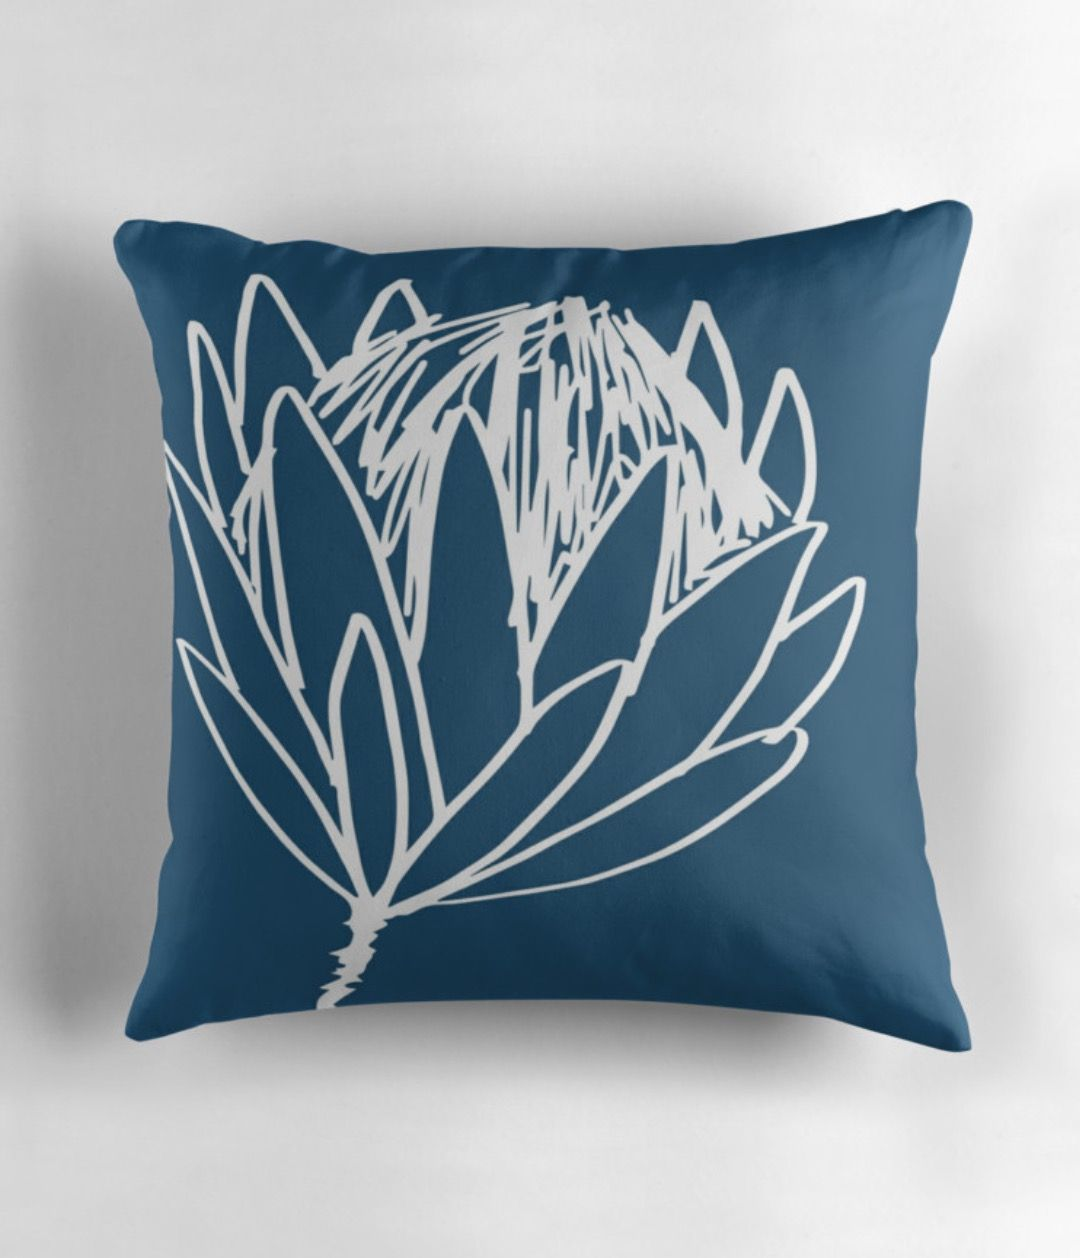 Proteas scatter cushion kussings pinterest